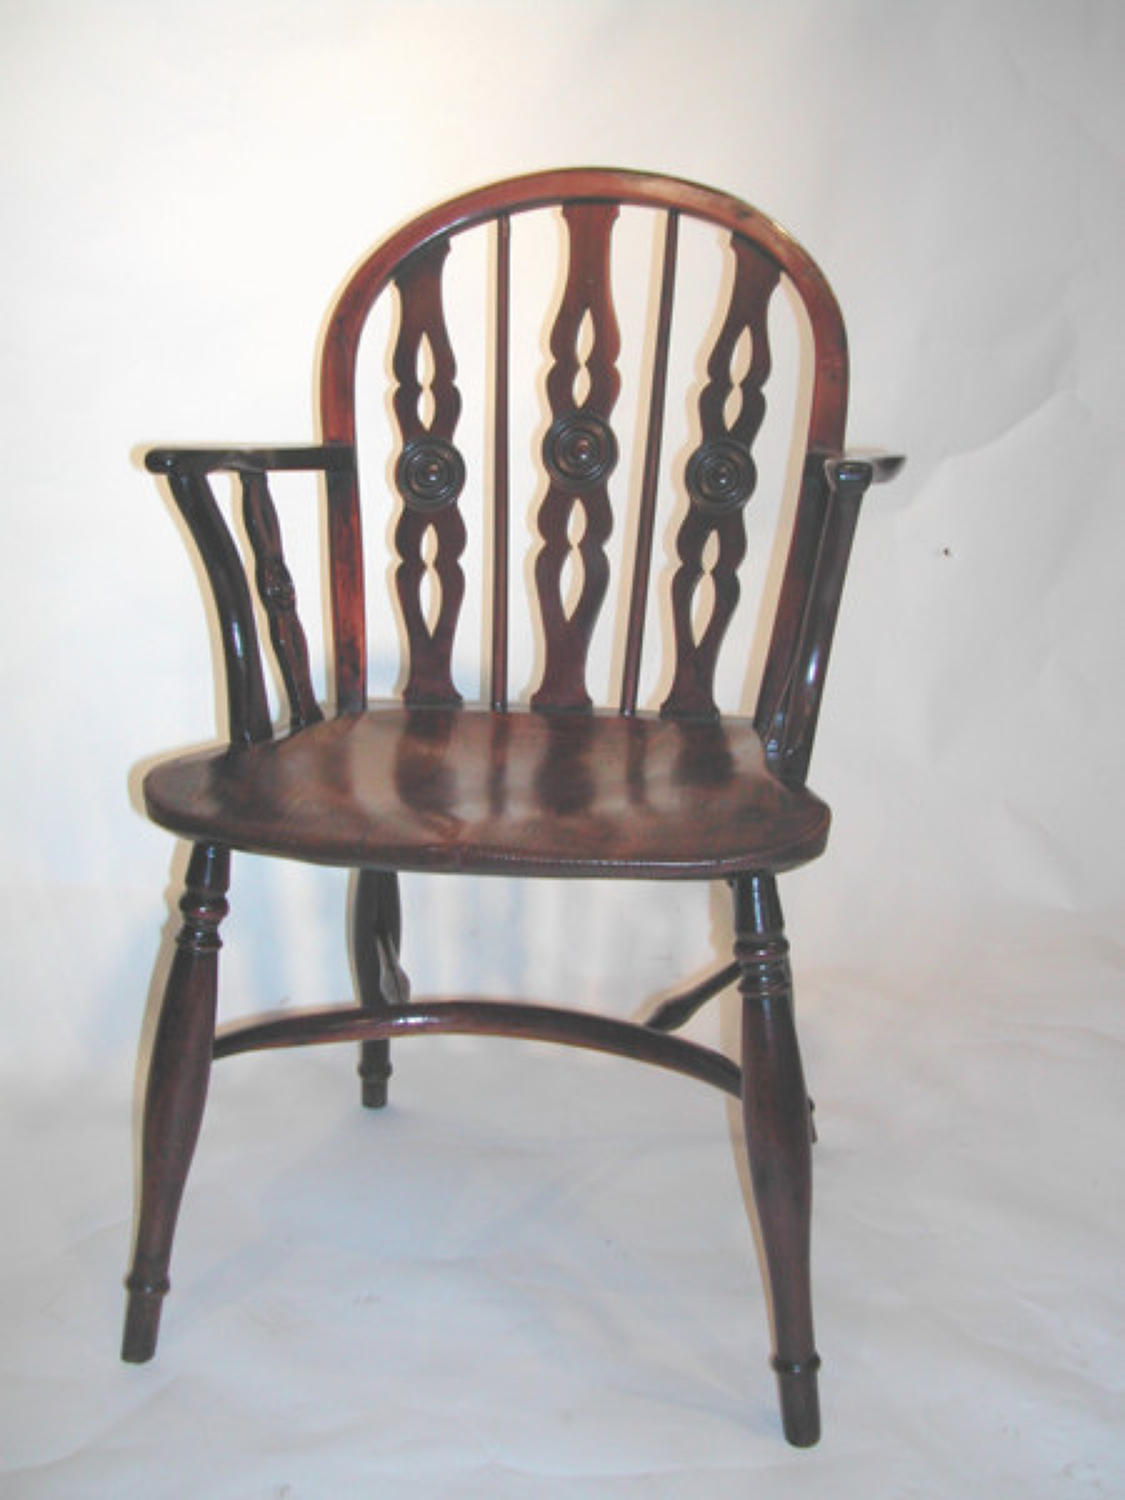 19thc Windsor Chair. English  C1790 - C1820